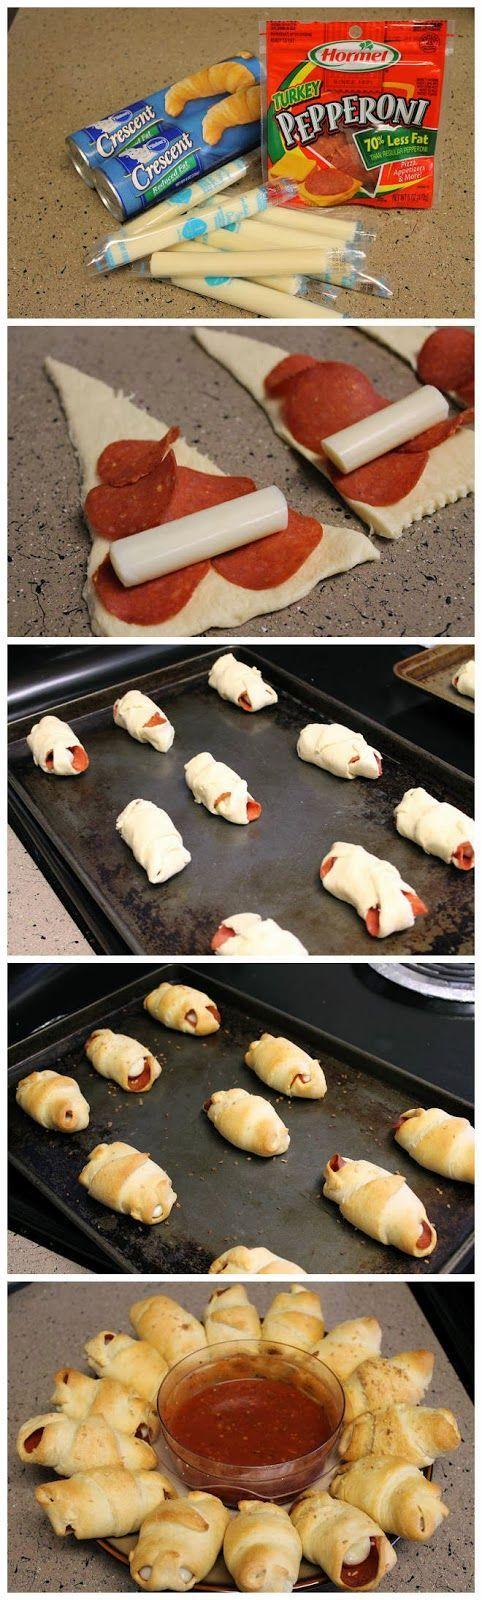 Crescent Pepperoni Roll-Ups